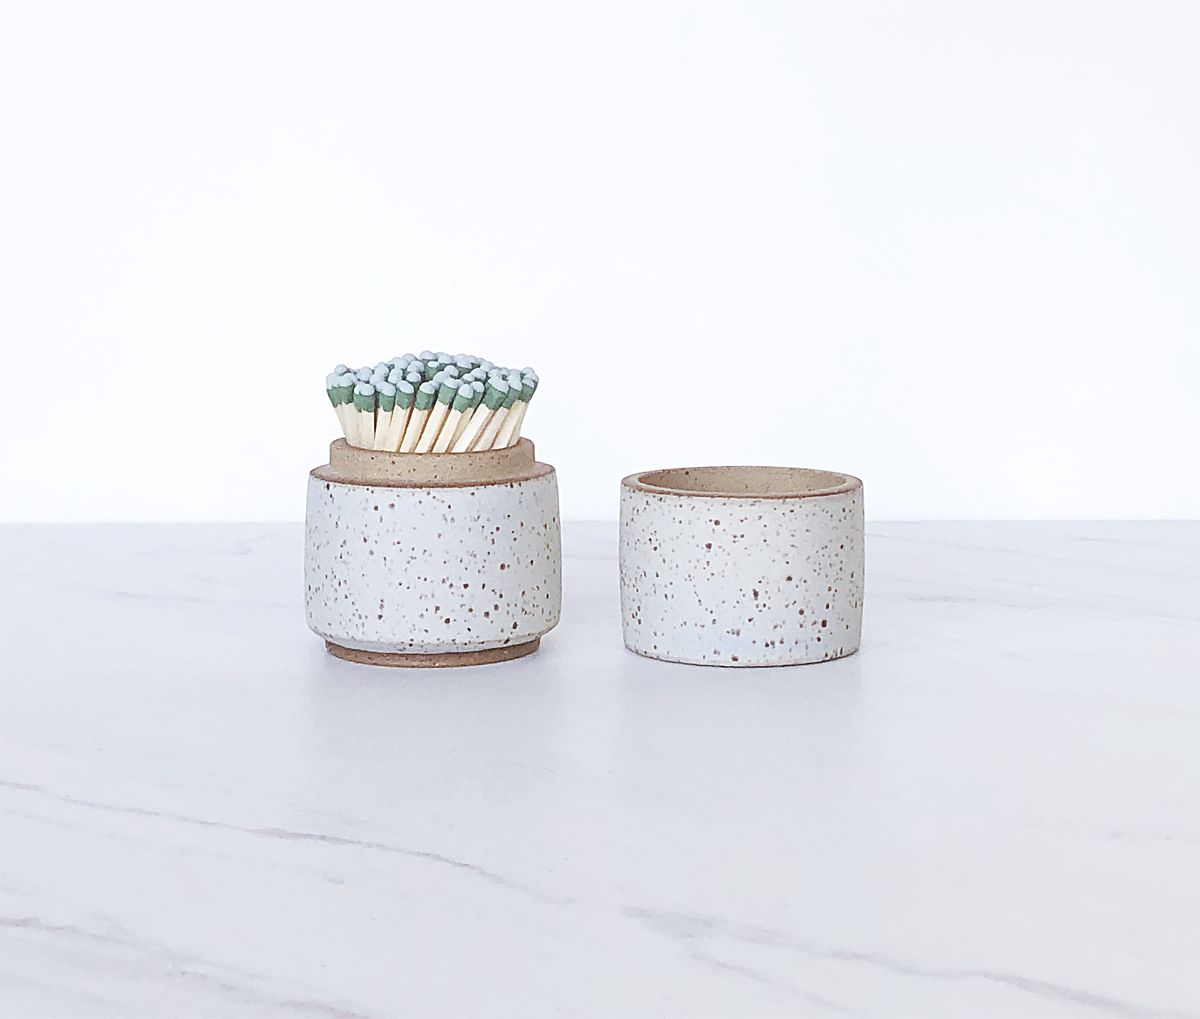 Image of Ceramic match holder with lid, glazed in eggshell blue